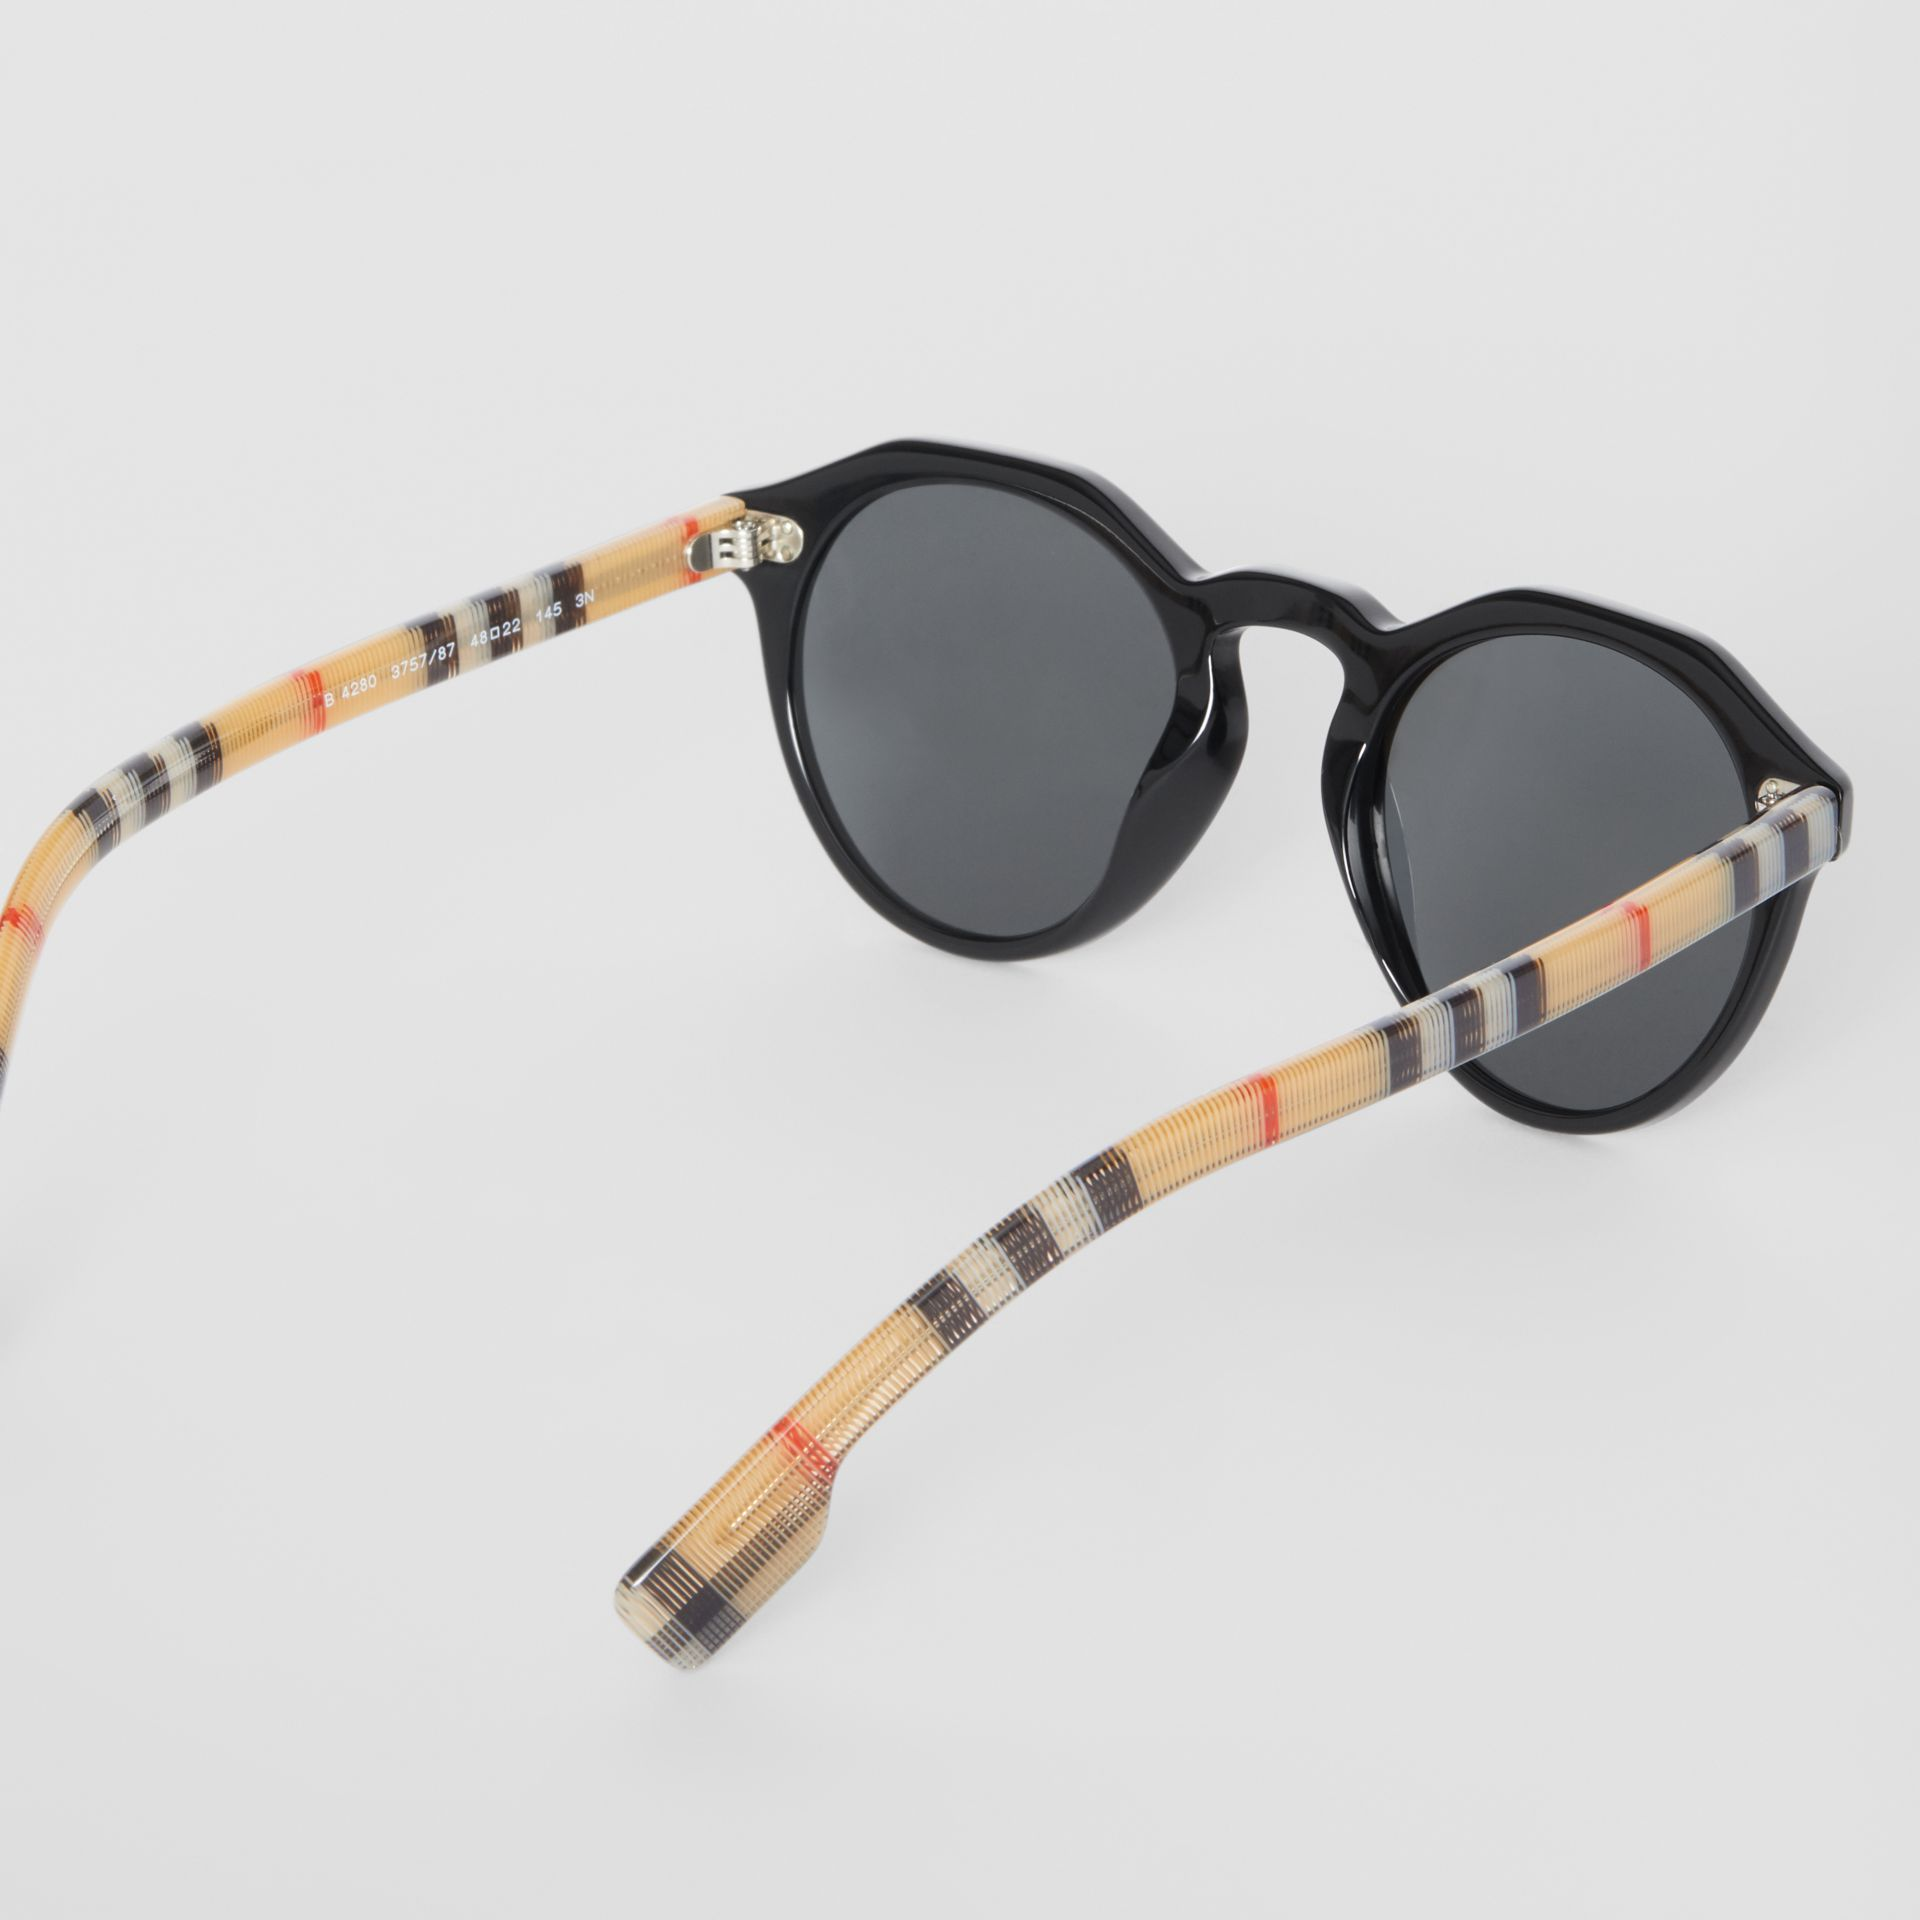 Vintage Check Detail Round Frame Sunglasses in Black/beige - Men | Burberry Canada - gallery image 3